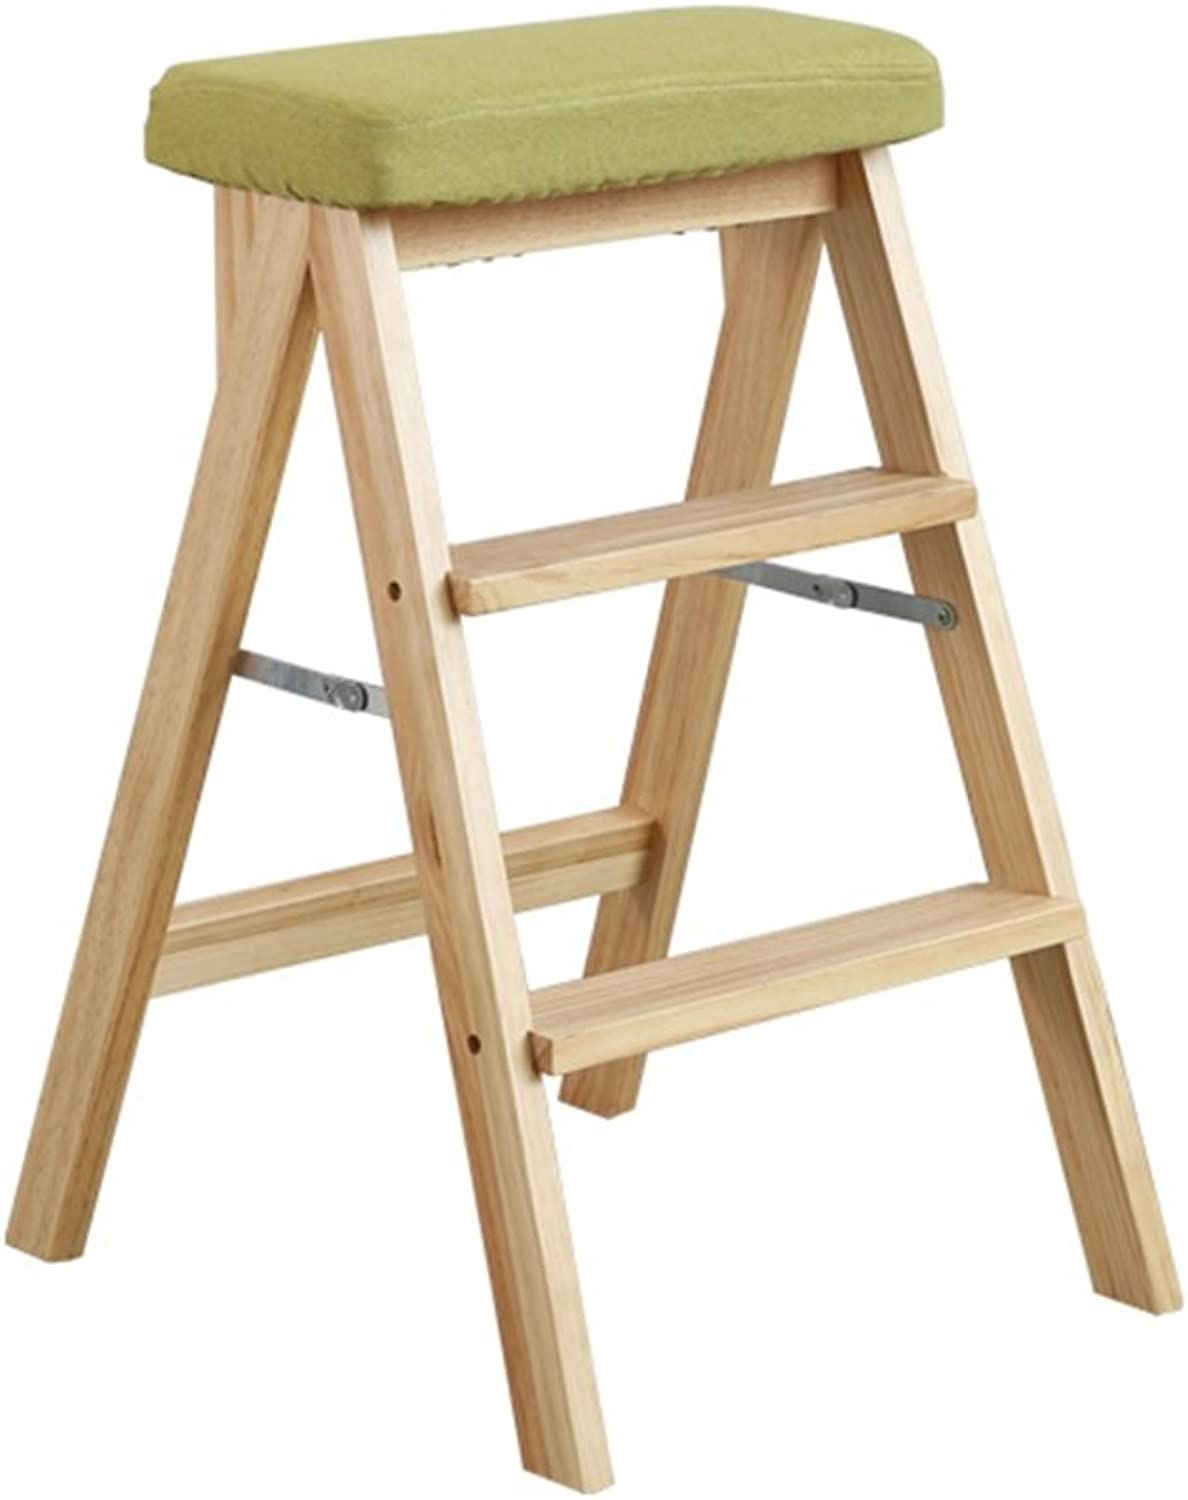 ZRXian-Step Stools Solid Wood Ladder Stool Folding Fold up Steps Stool Multifunctional Wooden Kitchen Office Use Ladder Chair with 3 Steps - Green